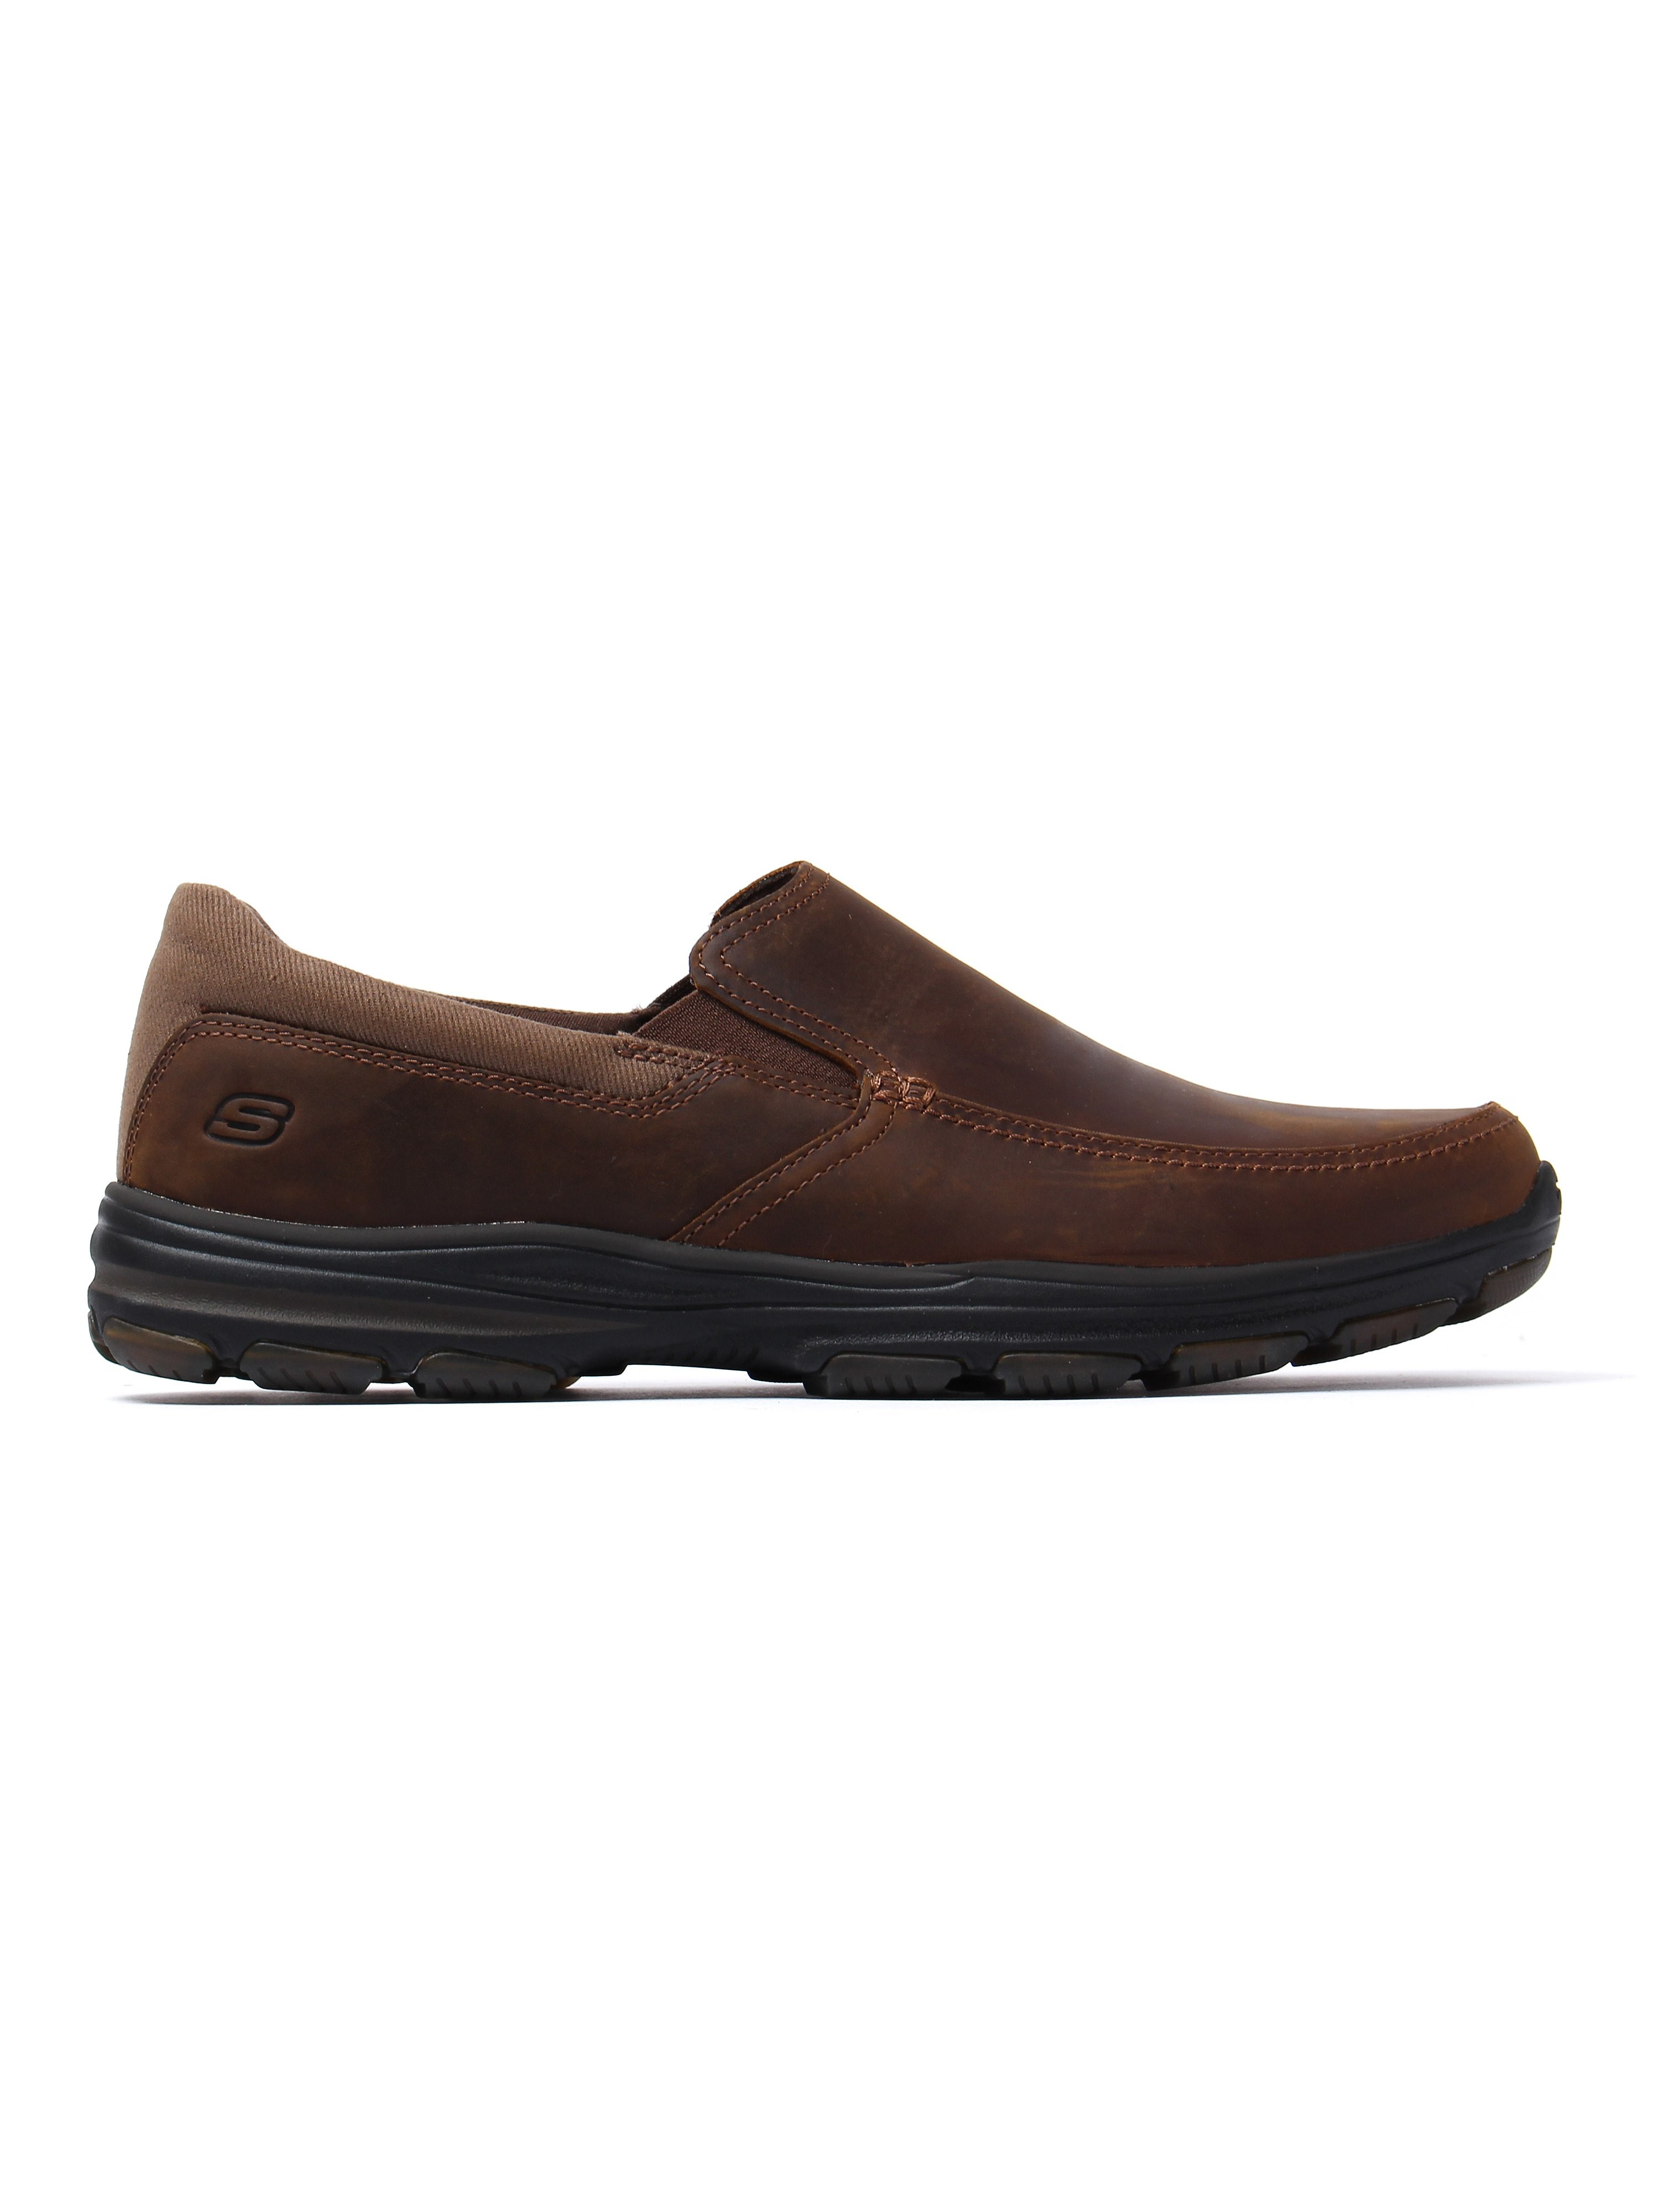 Skechers Men's Garton Venco Loafers - Dark Brown Leather